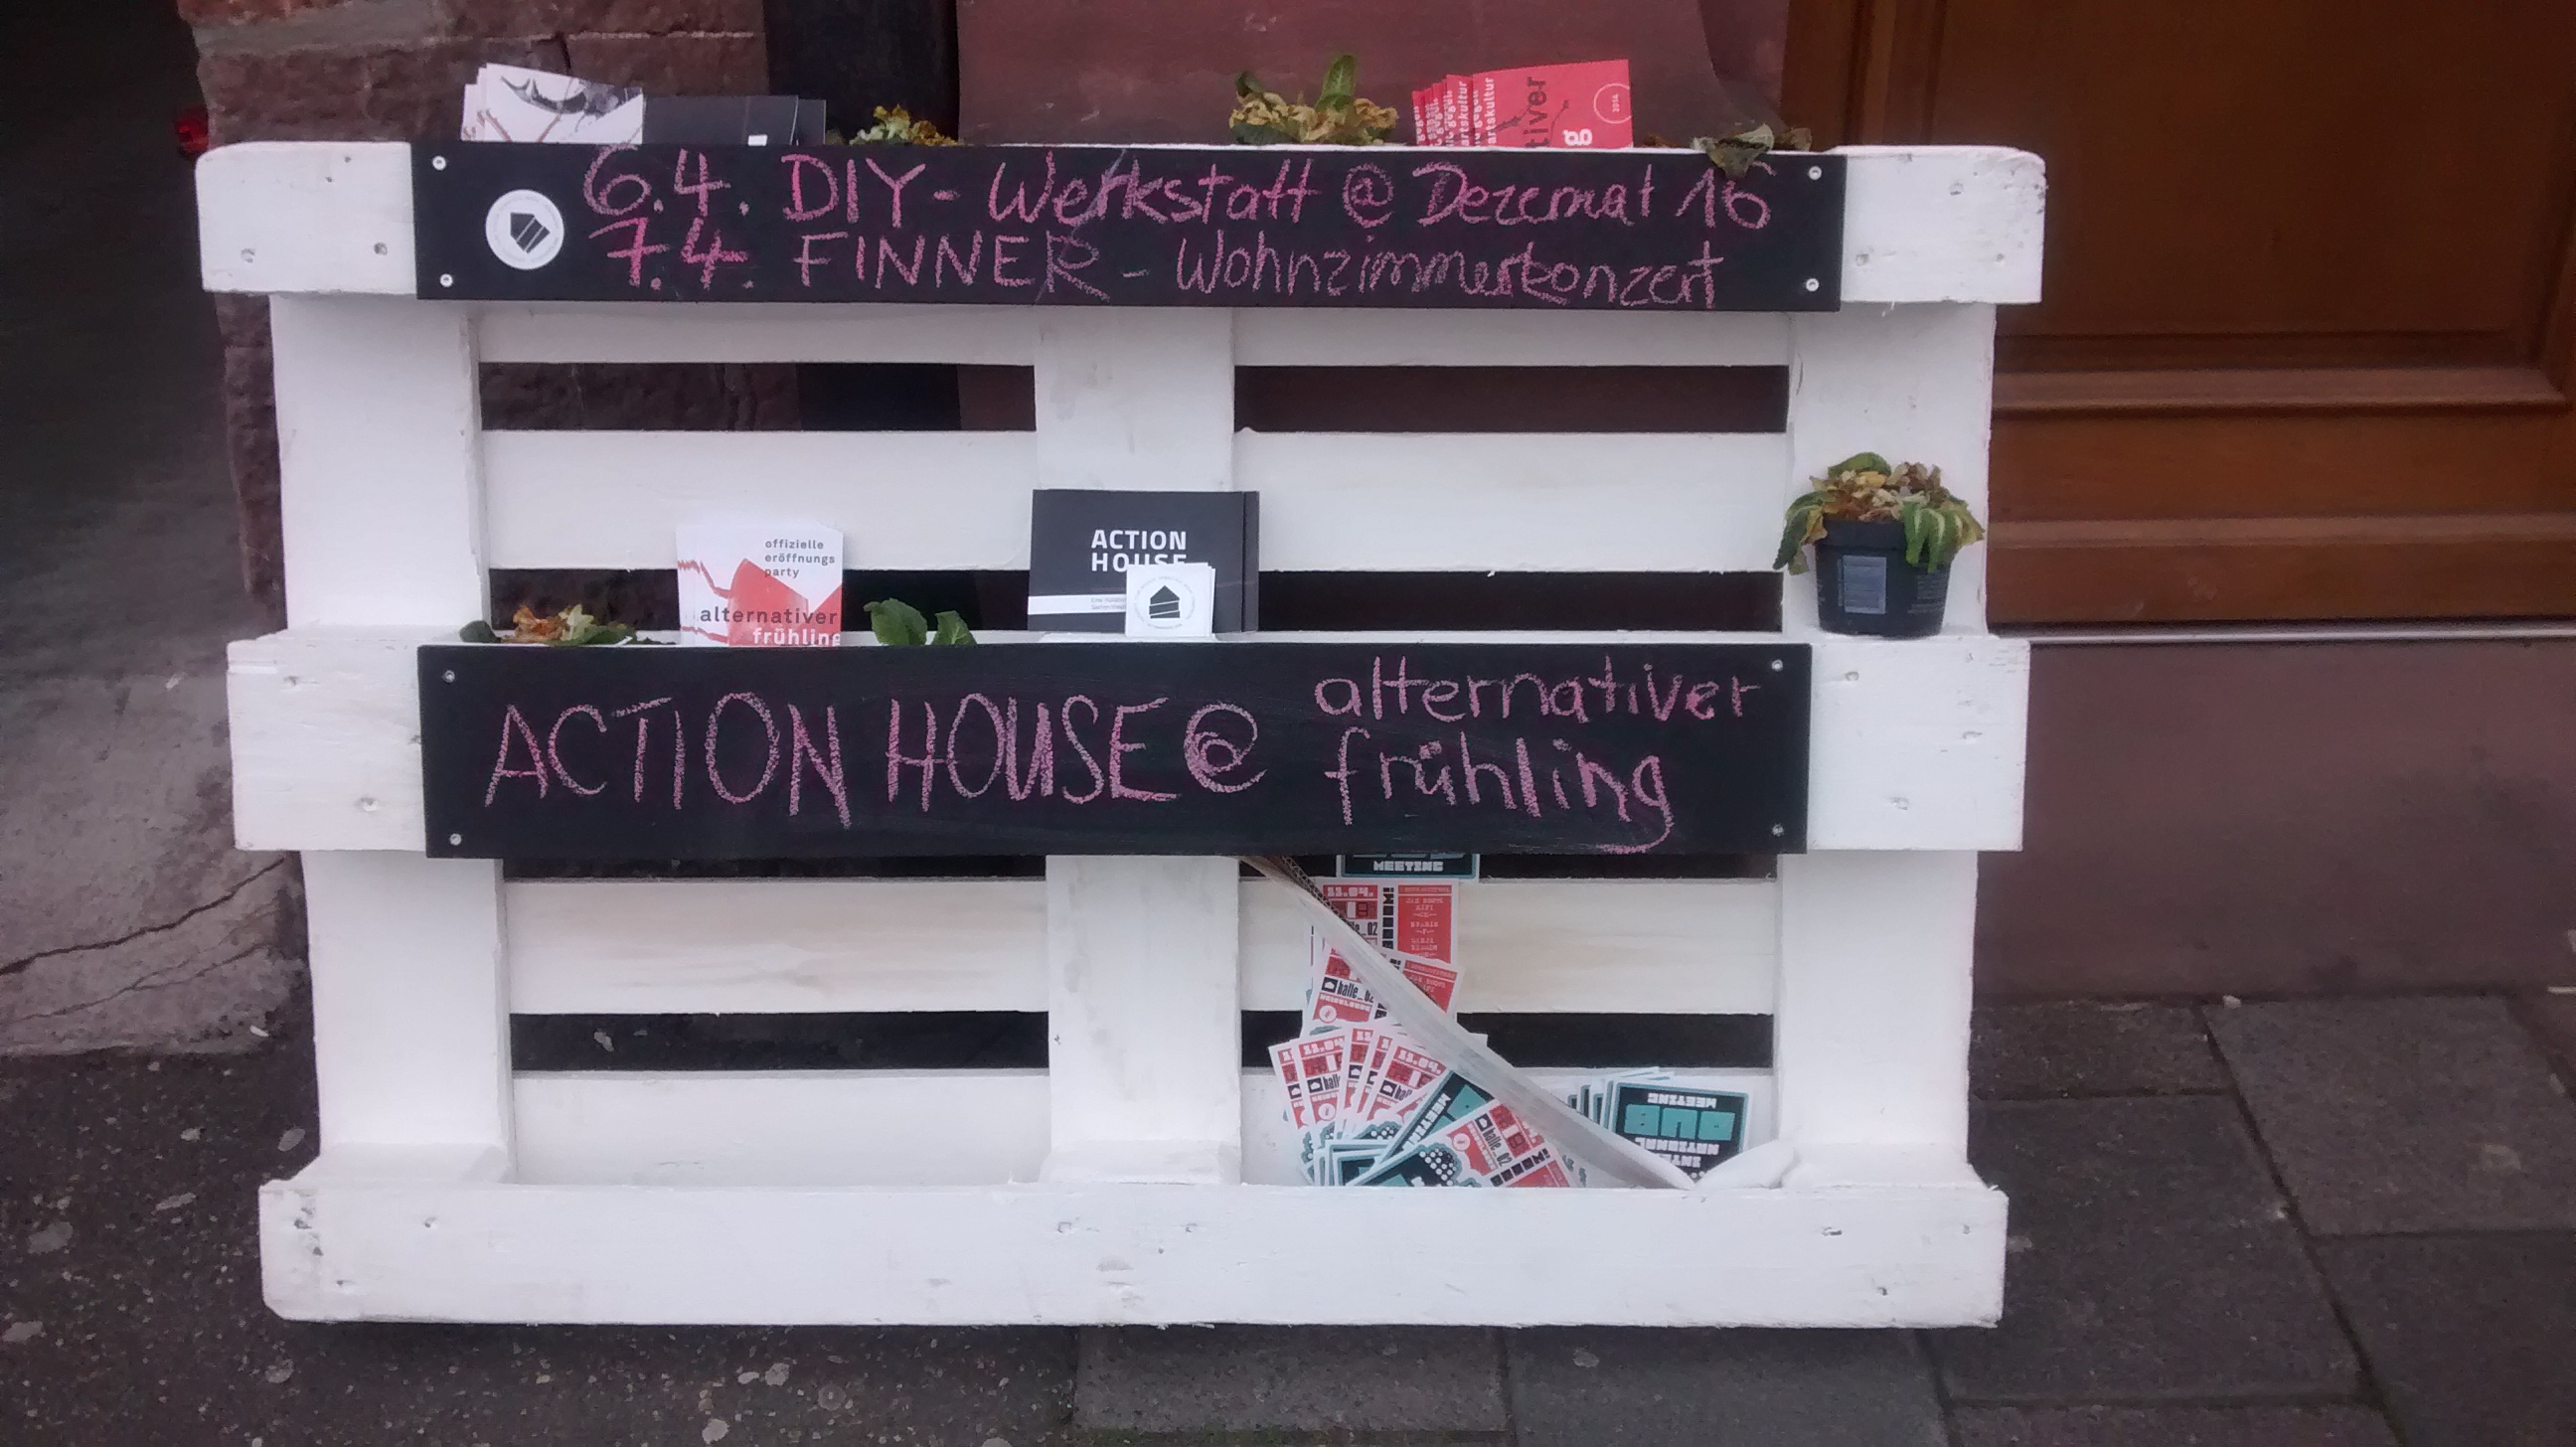 Alternativer Frühling @ Action House